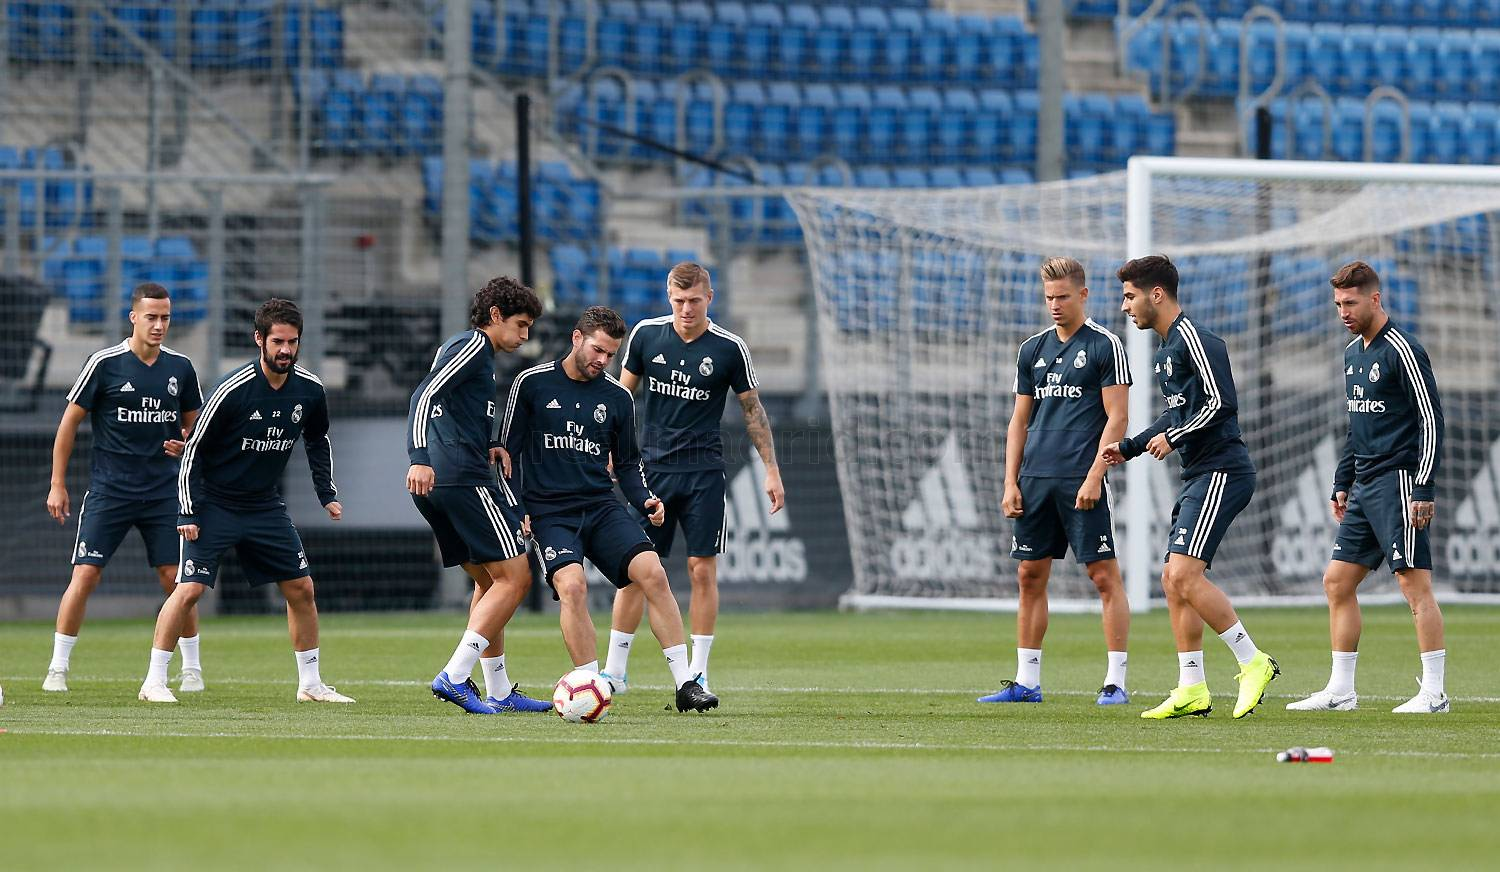 Real Madrid - Entrenamiento del Real Madrid - 18-10-2018